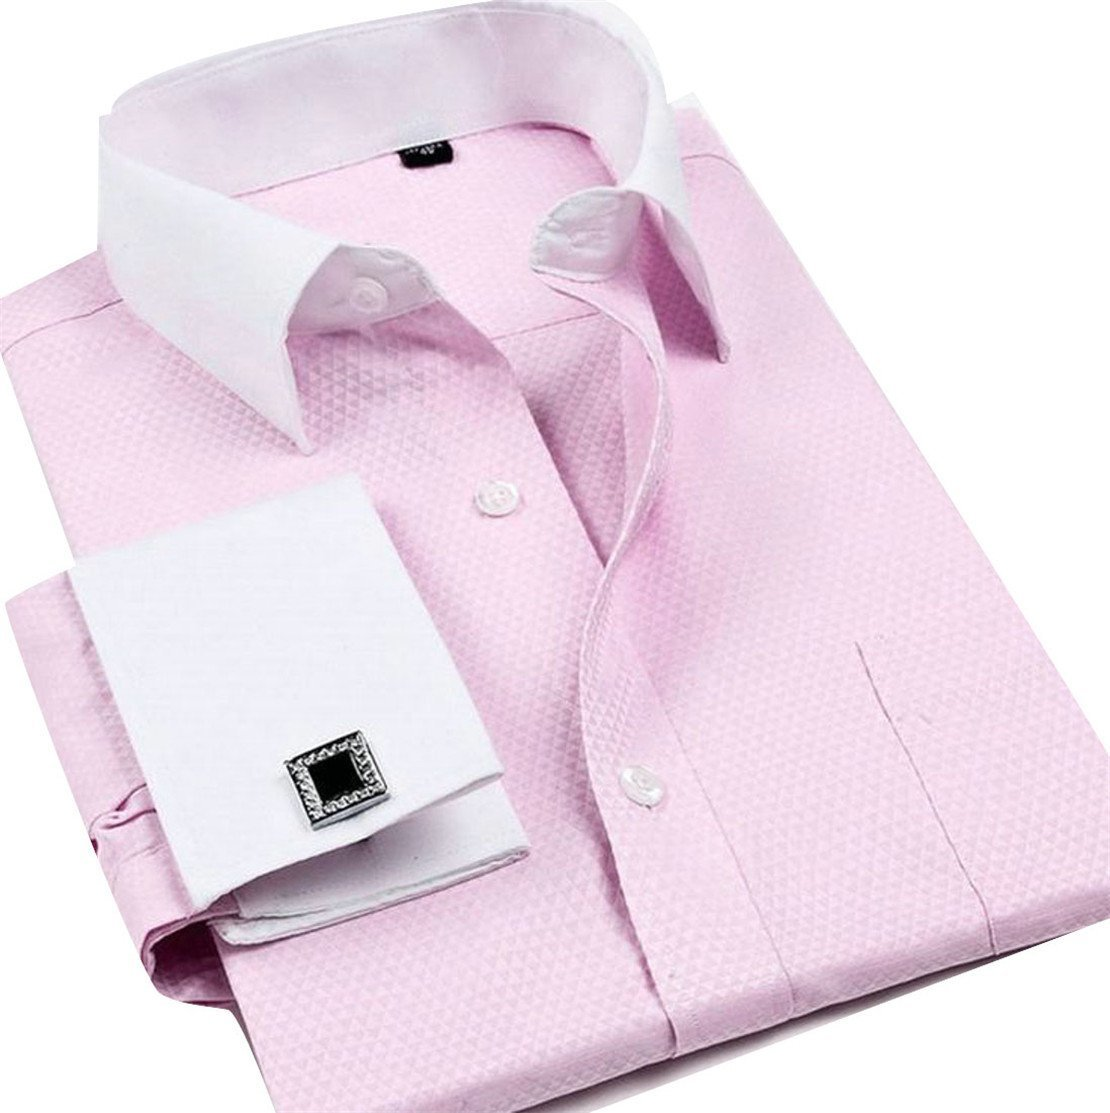 Pivaconis Mens Lapel Neck Pocket Cufflinks Long Sleeve Comfortably Button Down Shirts Pink L